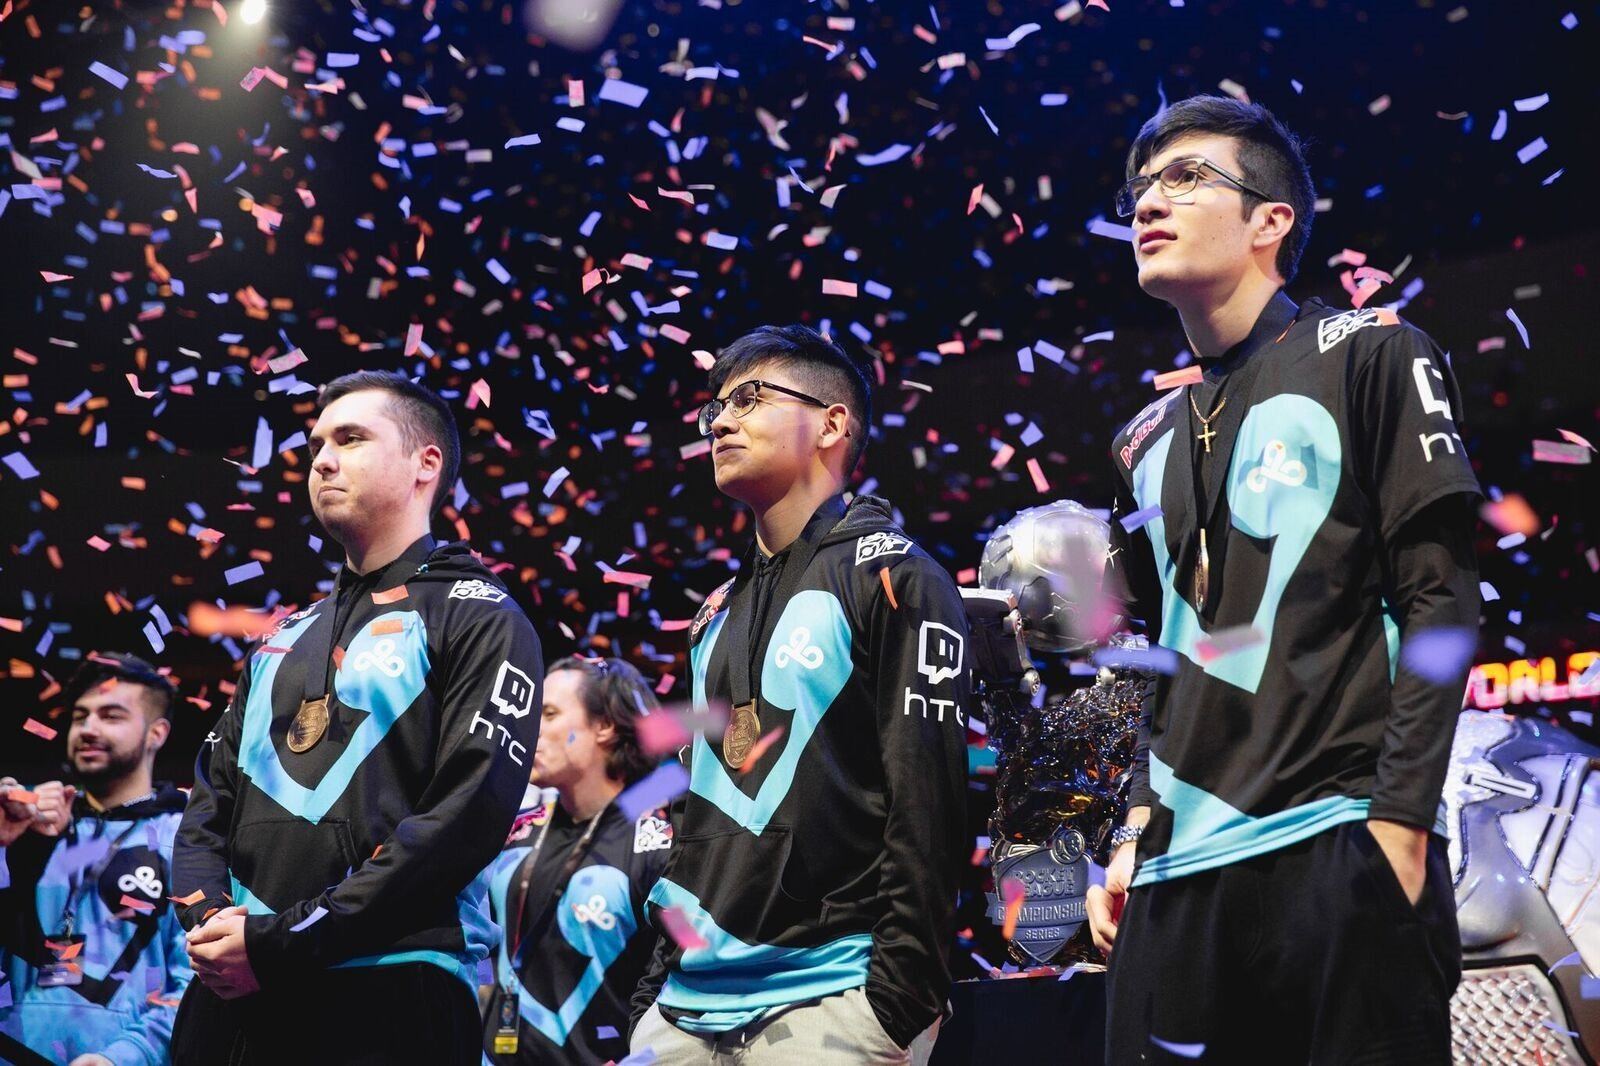 Solo plays and style led to Cloud9's first Rocket League championship screenshot